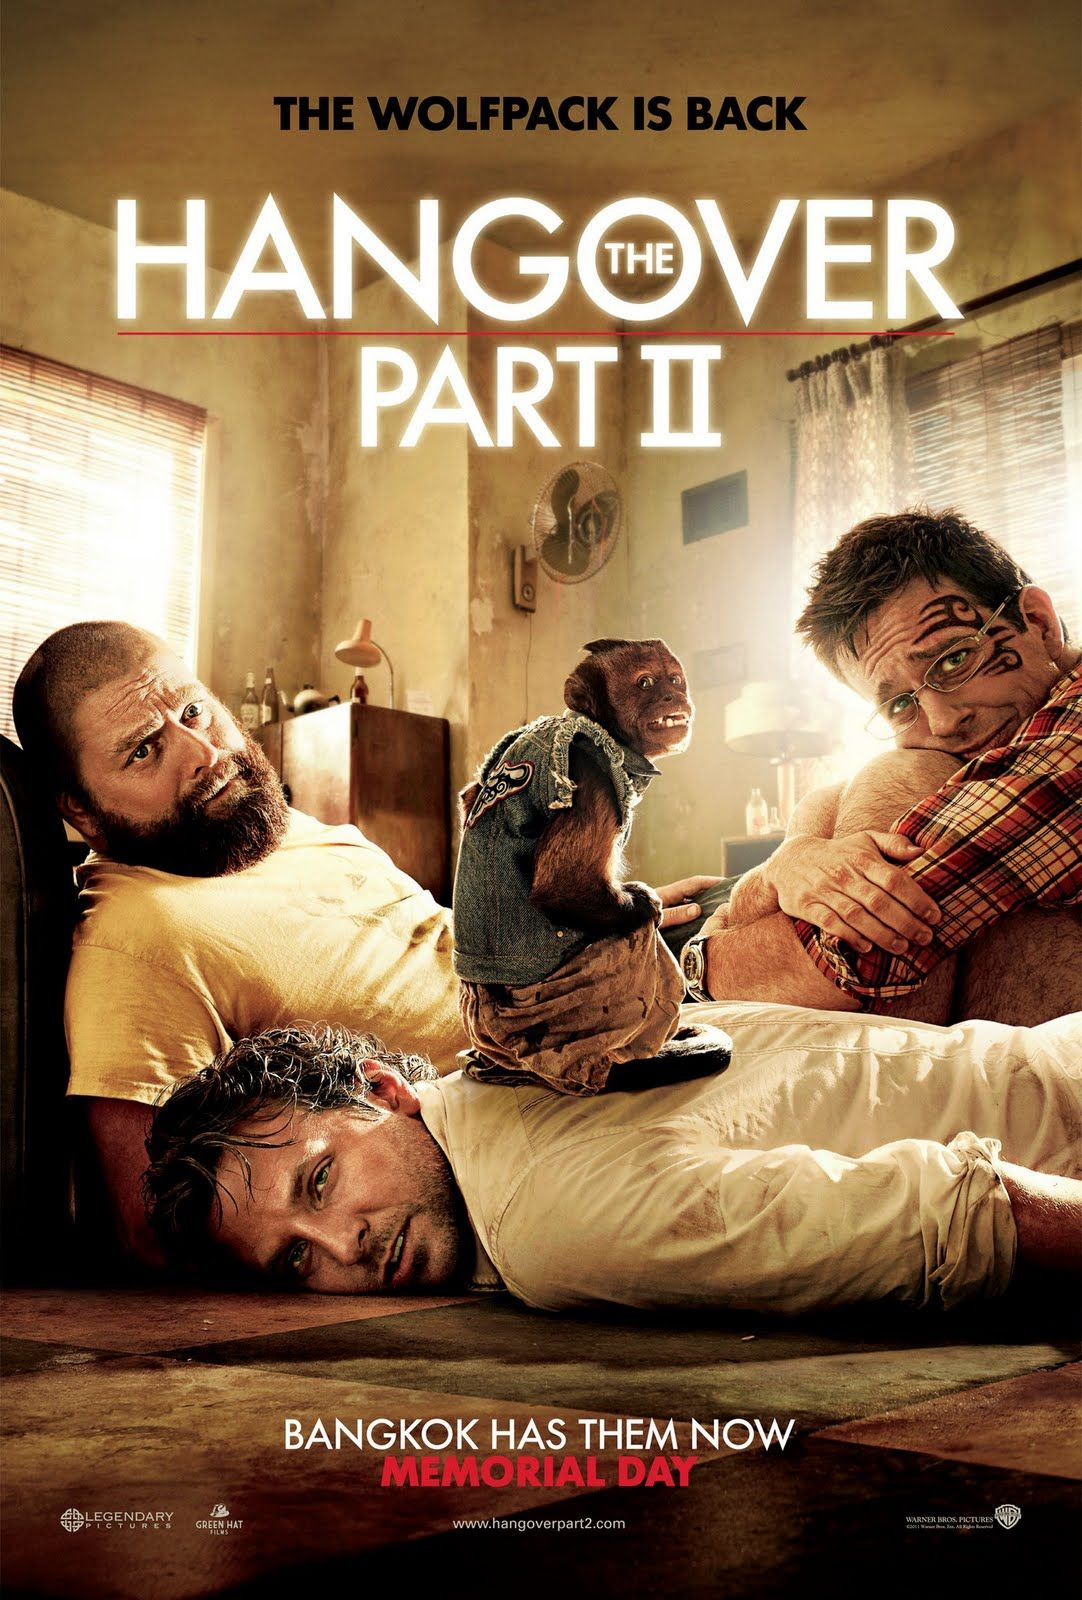 Hangover 2 Trailer Hangover 2 Movie Poster Funny Movies Comedy Movies Streaming Movies